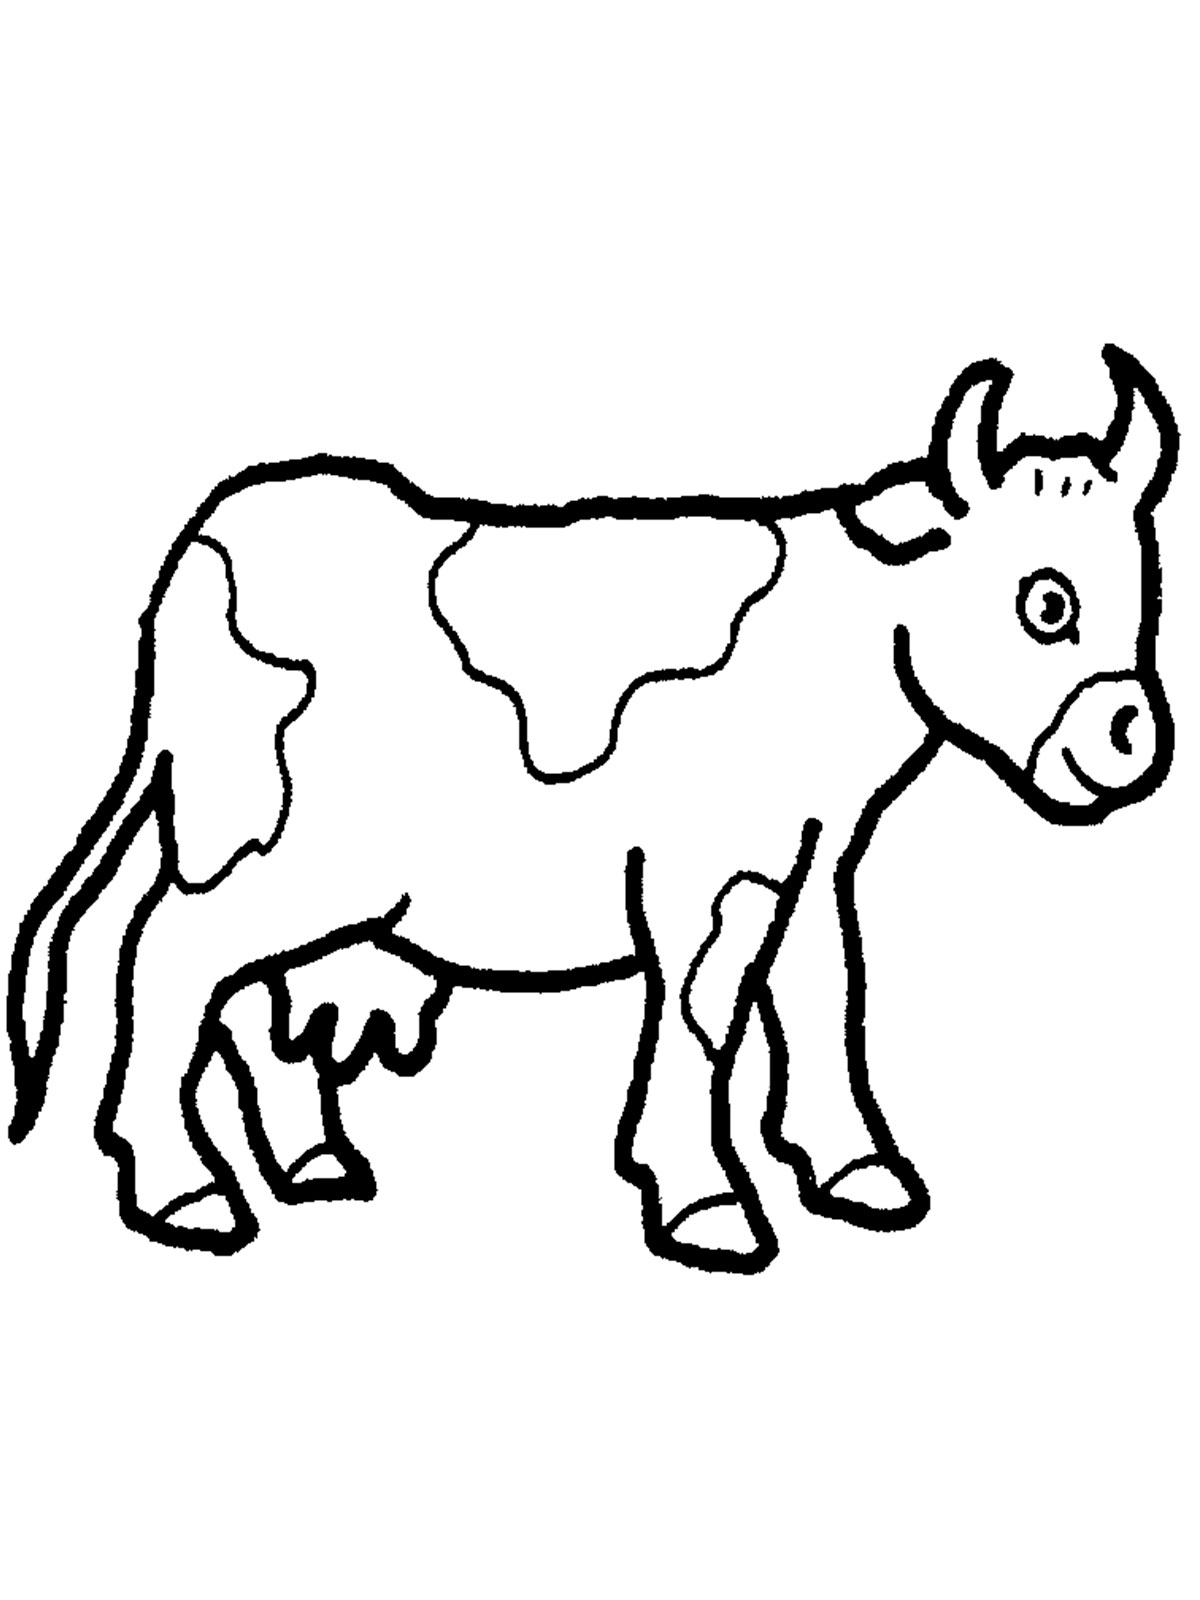 Cows coloring pages to download